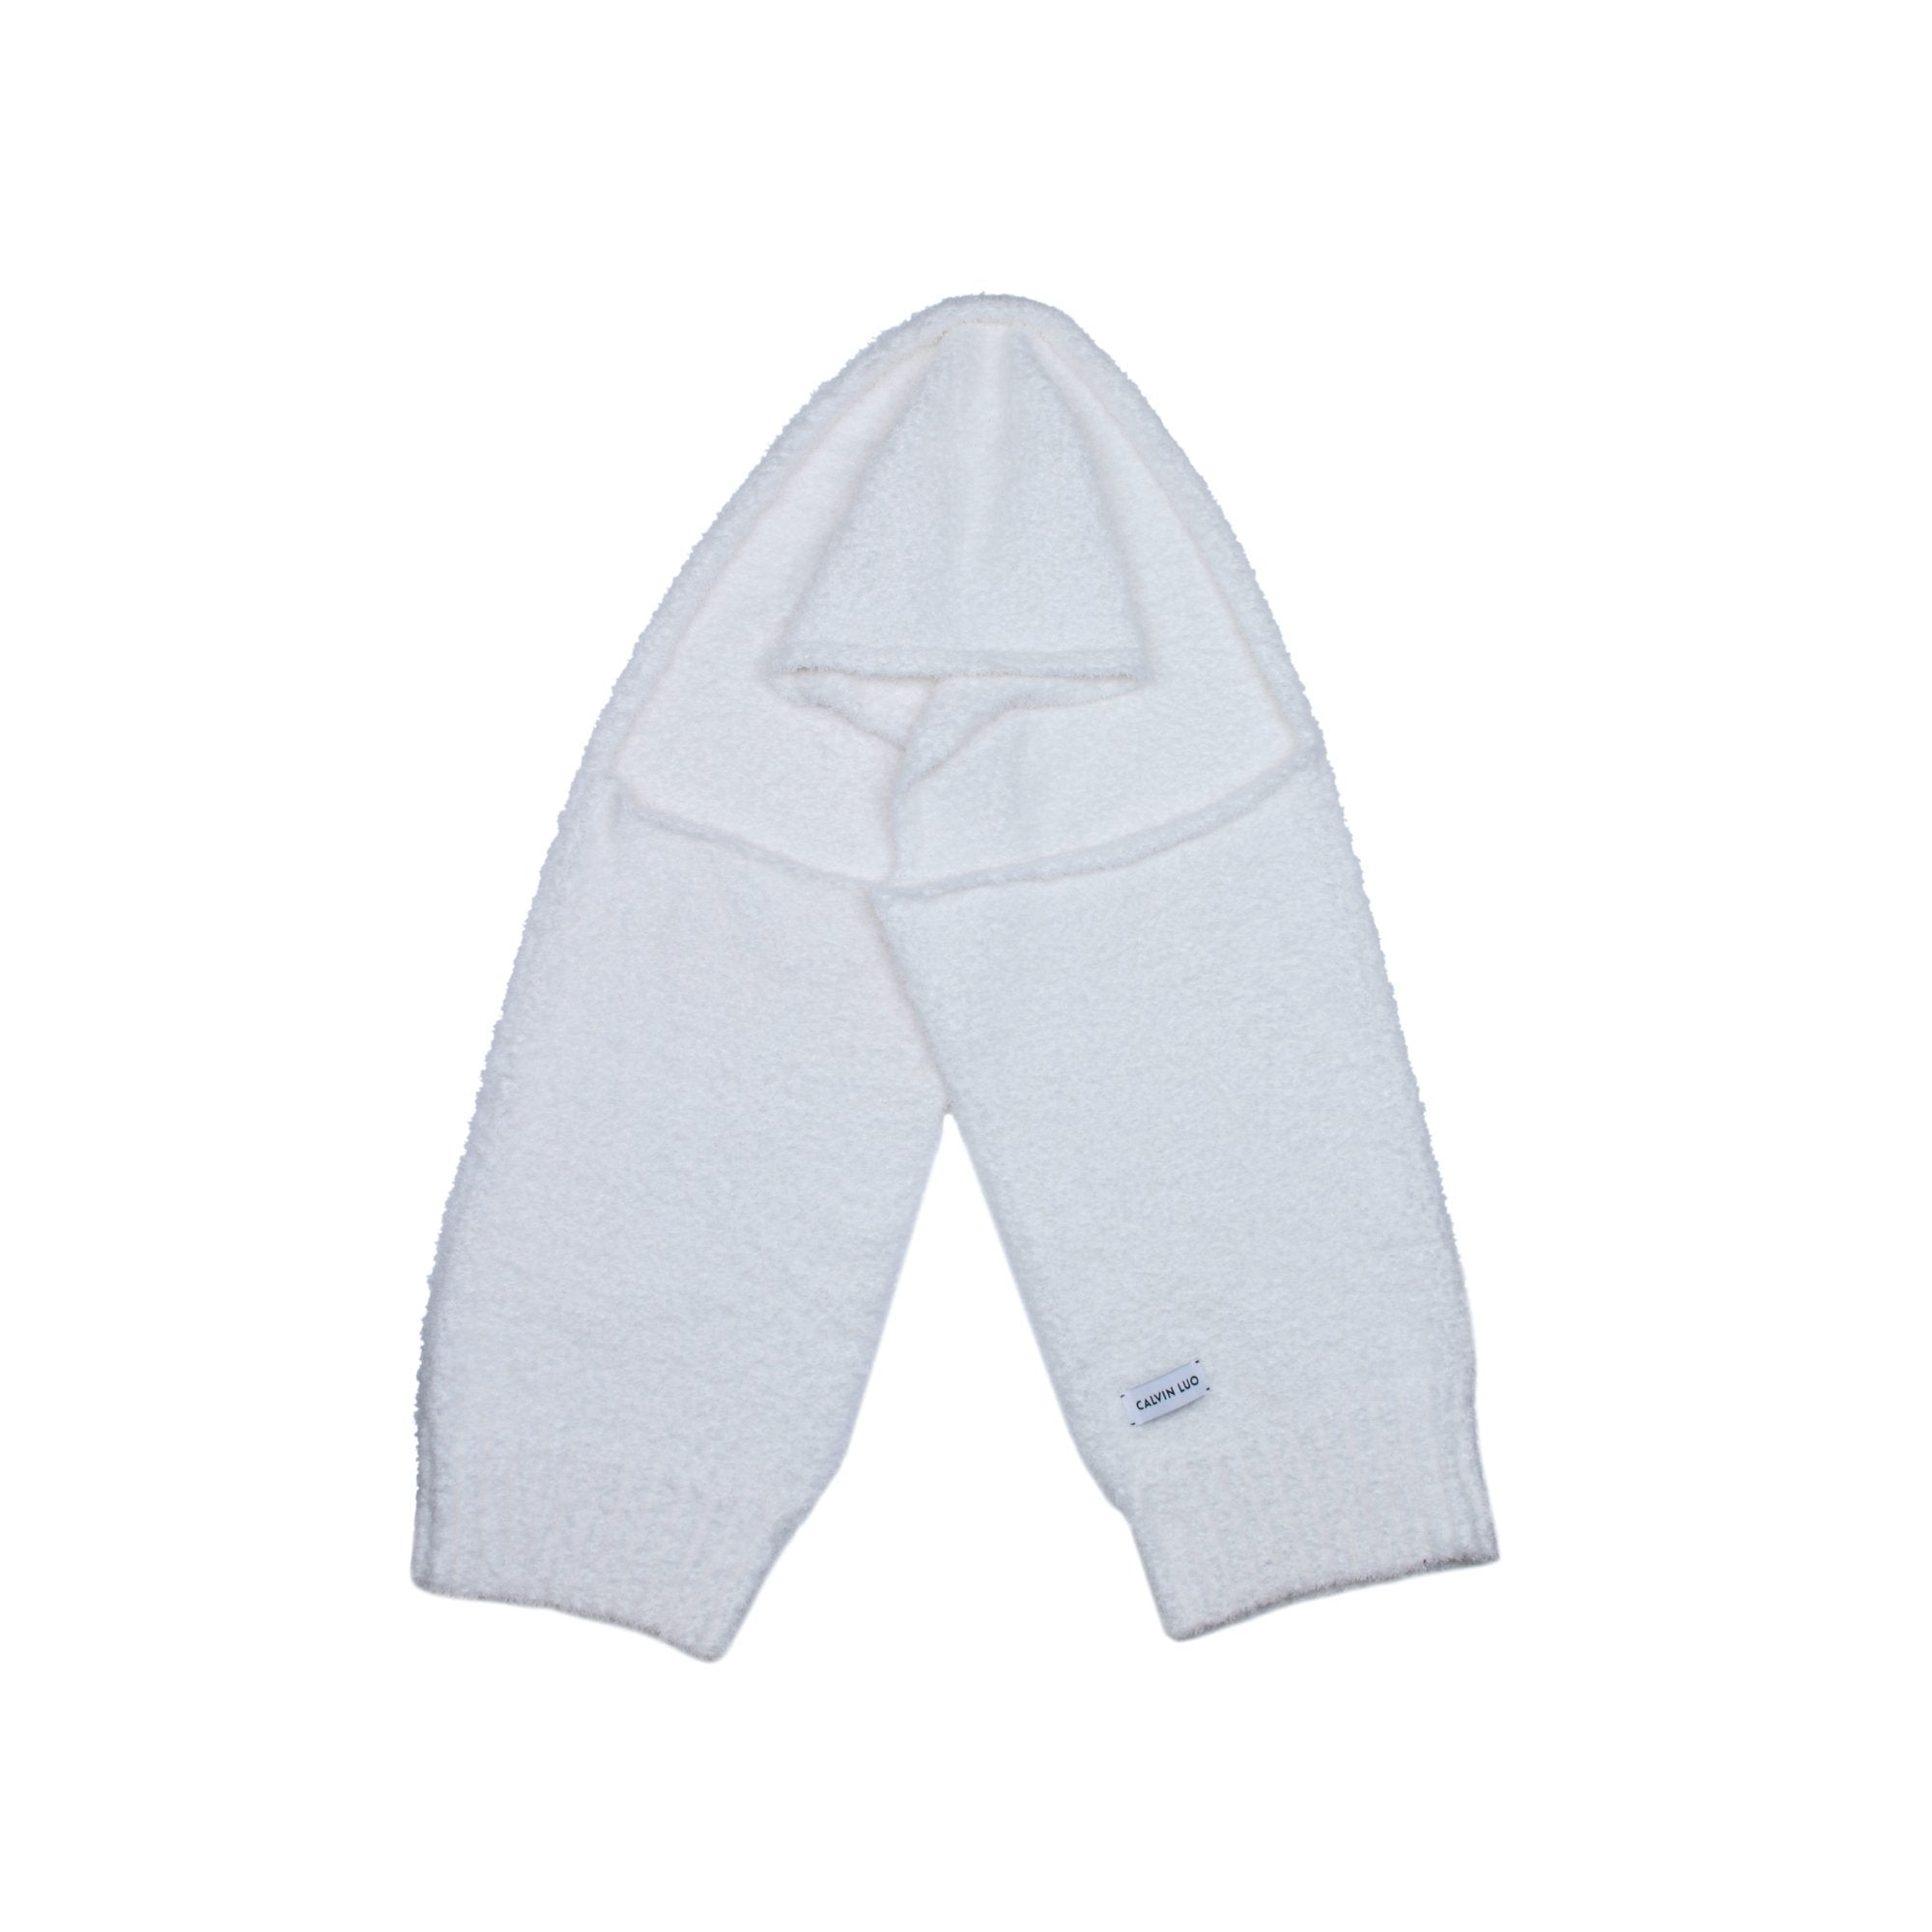 CALVIN LUO Lunar New Year White Arm Sleeve Scarf | MADA IN CHINA